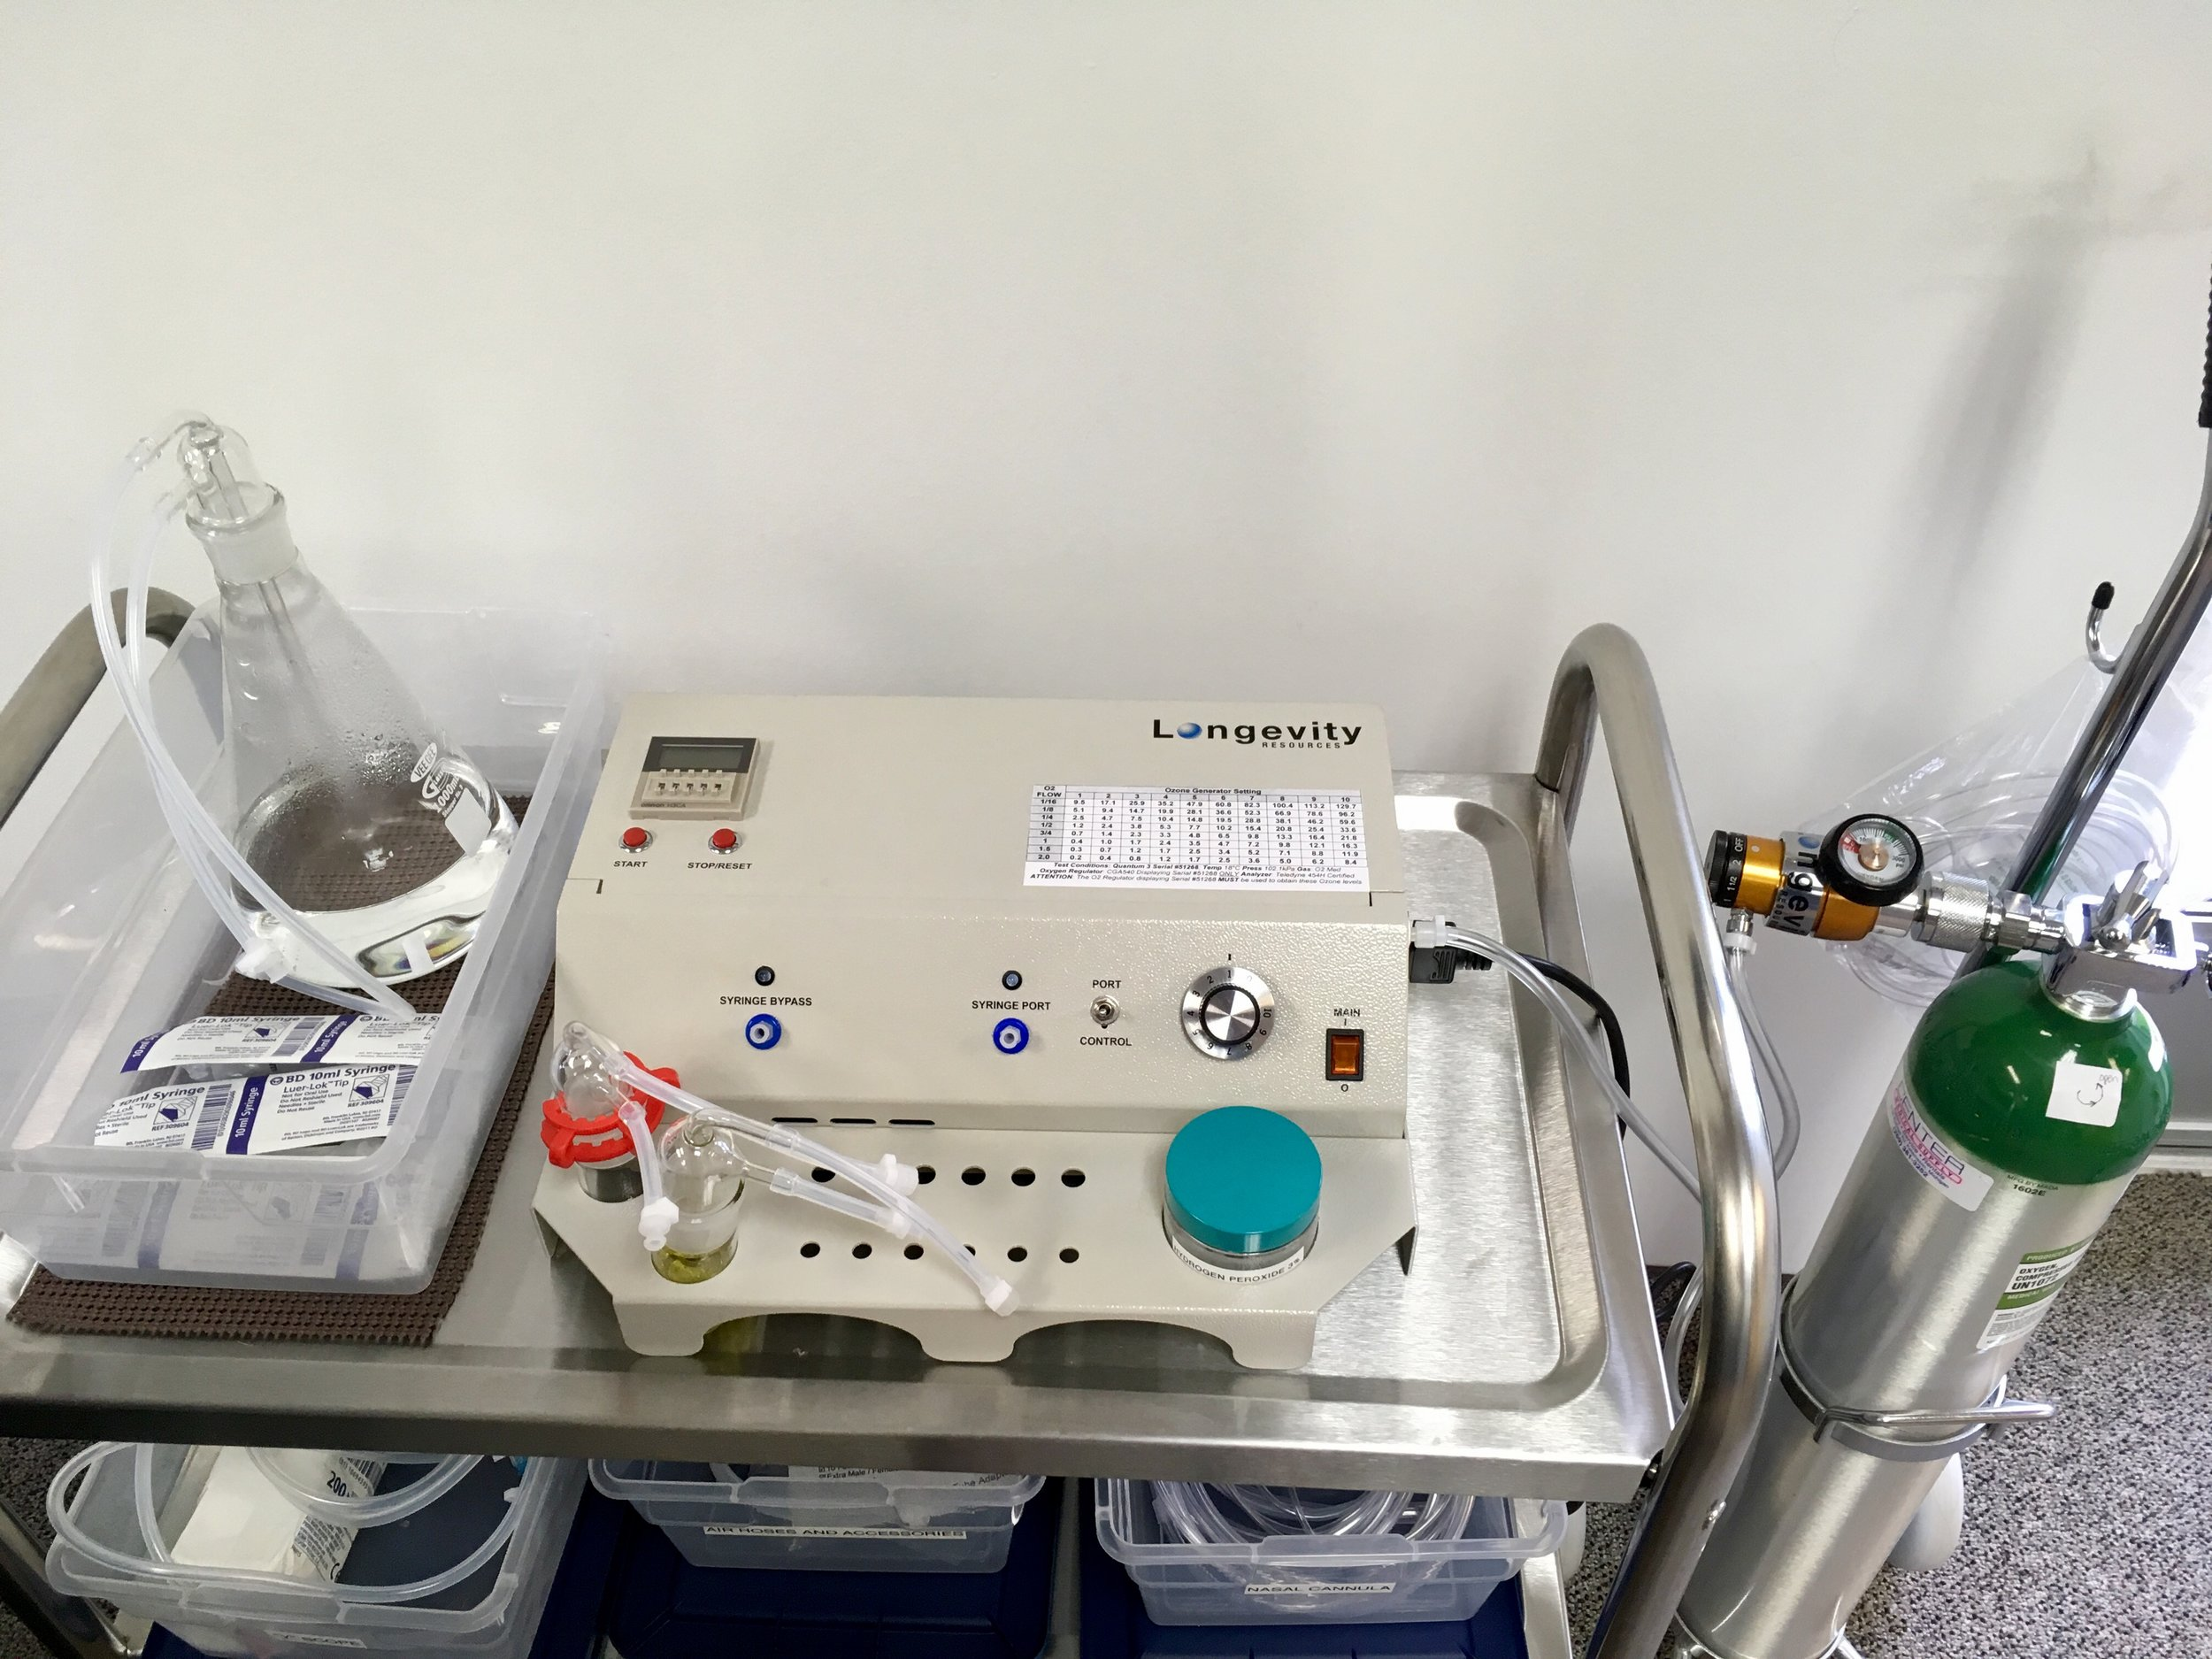 In medical use, ozone is made from pure oxygen with an ozone generator and the gas is administered in precise therapeutic doses.